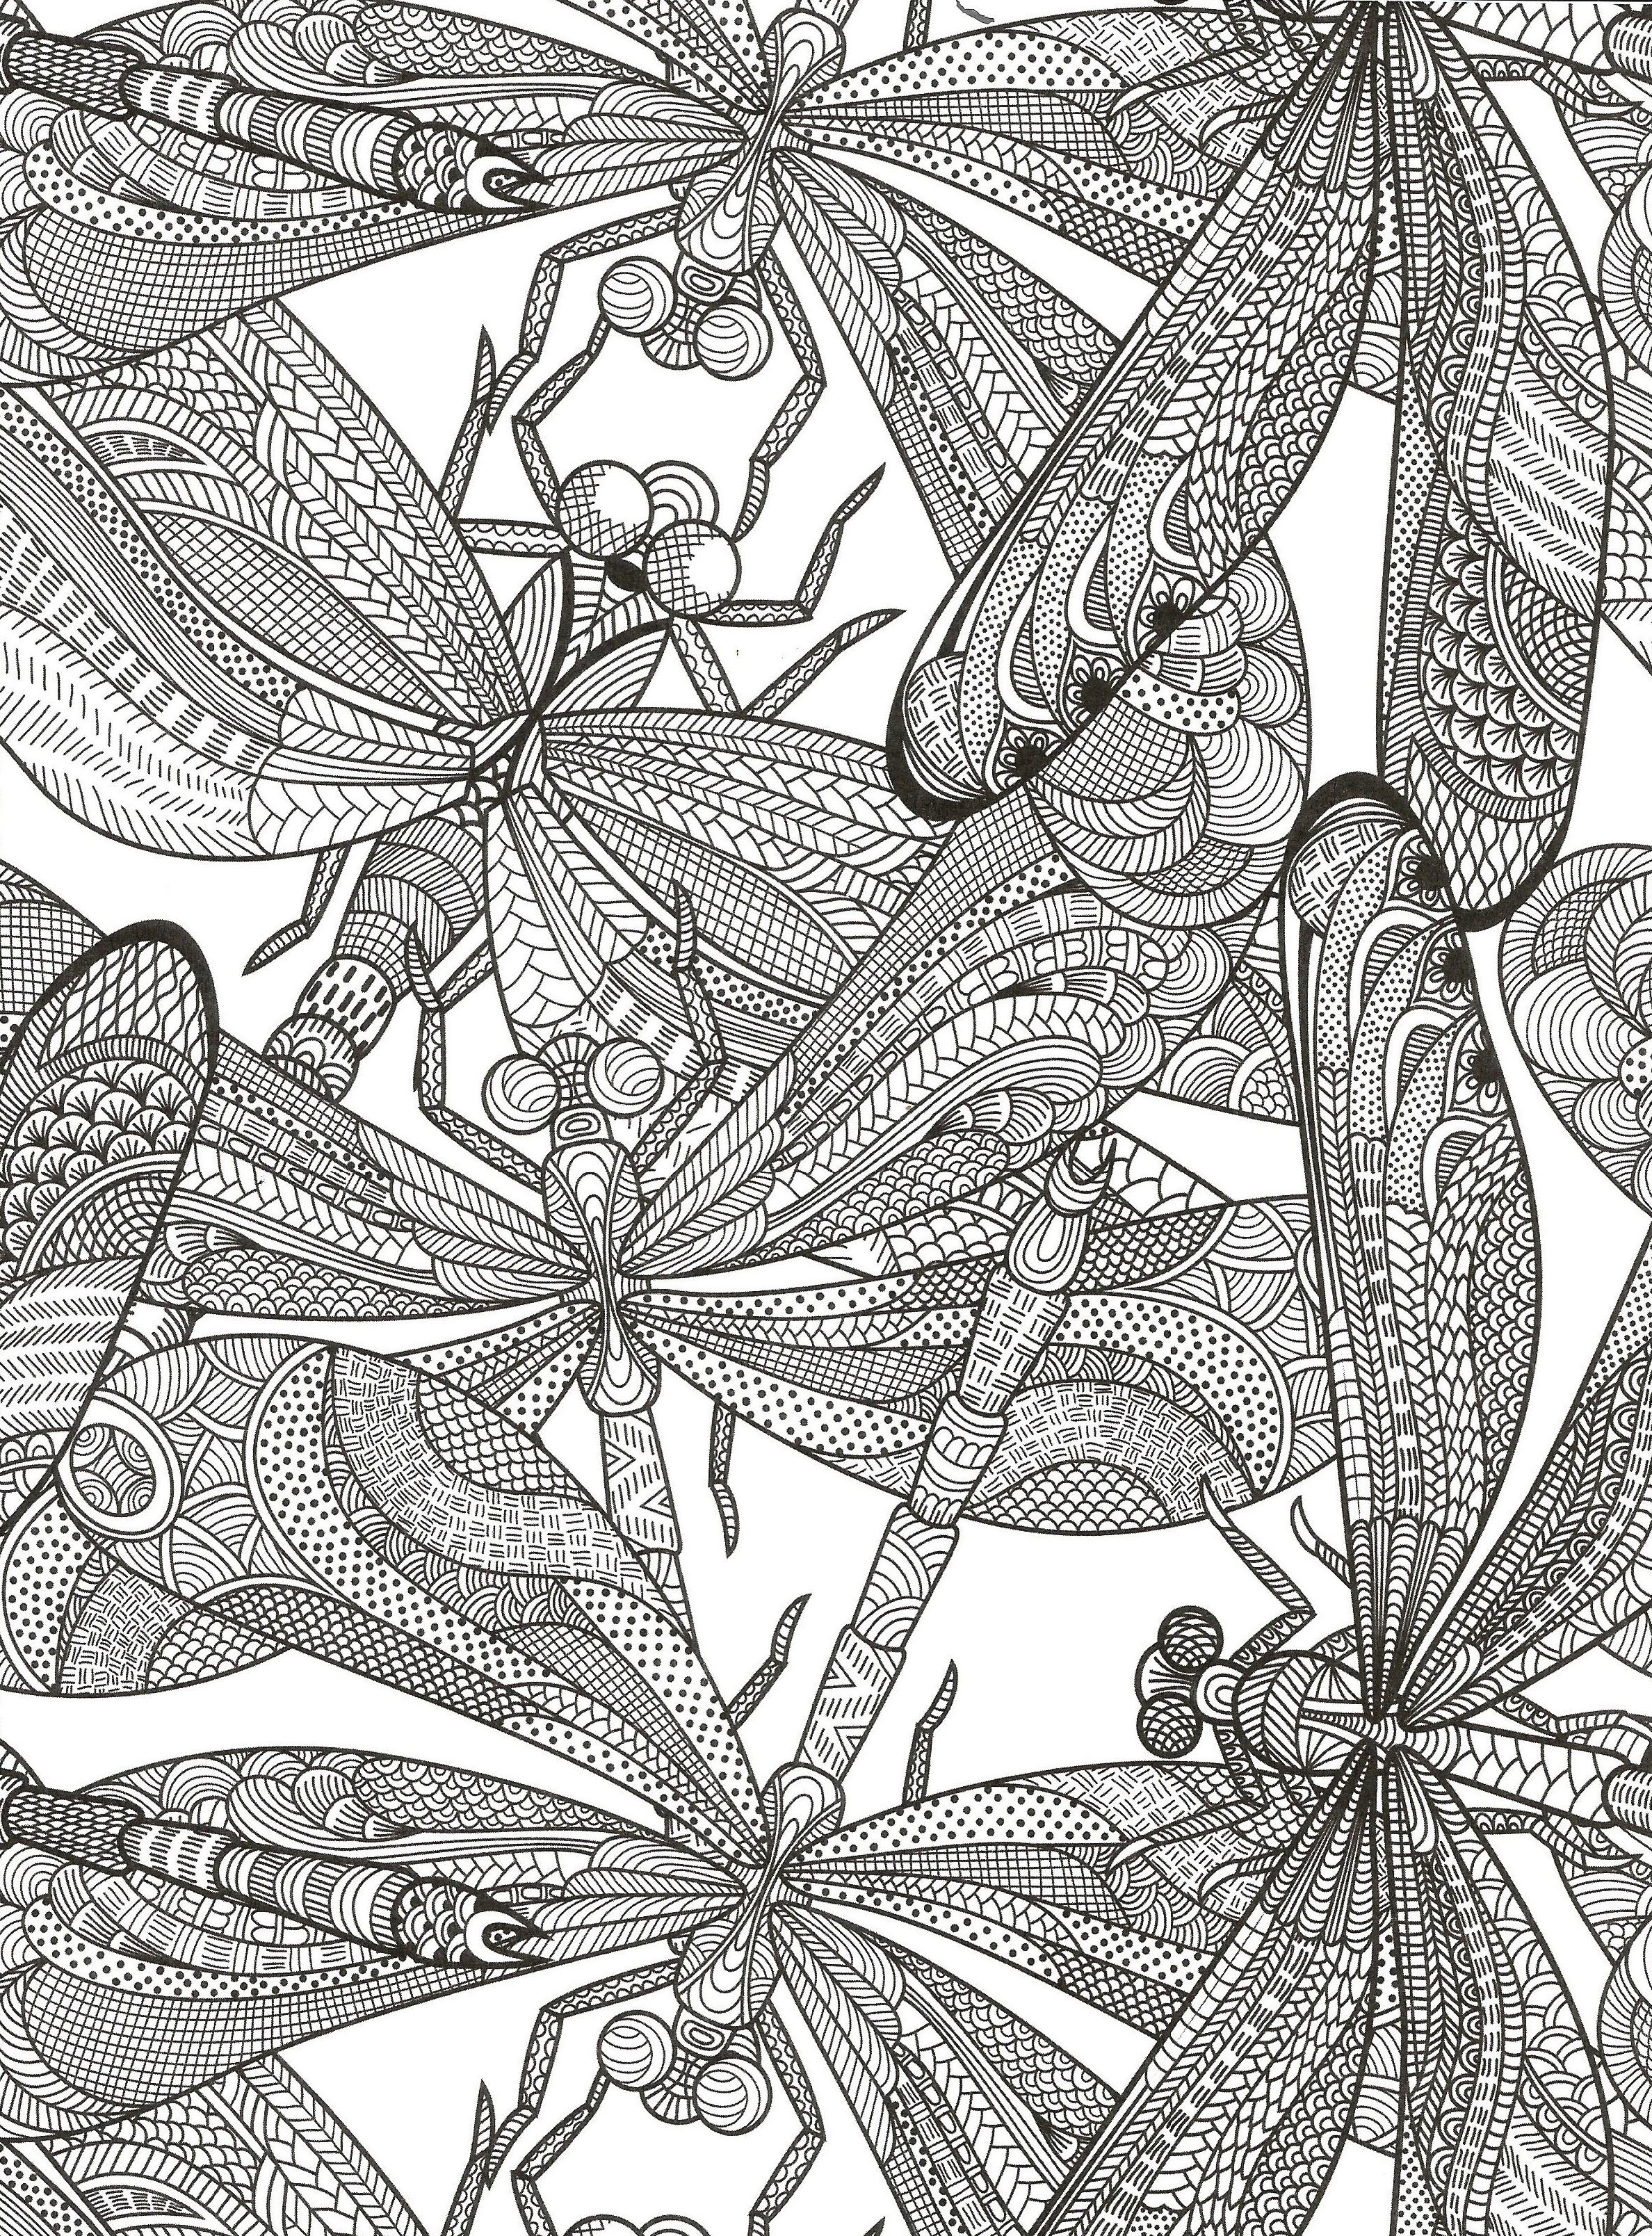 Dragonfly coloring page for adults. | Coloring | Pinterest ...